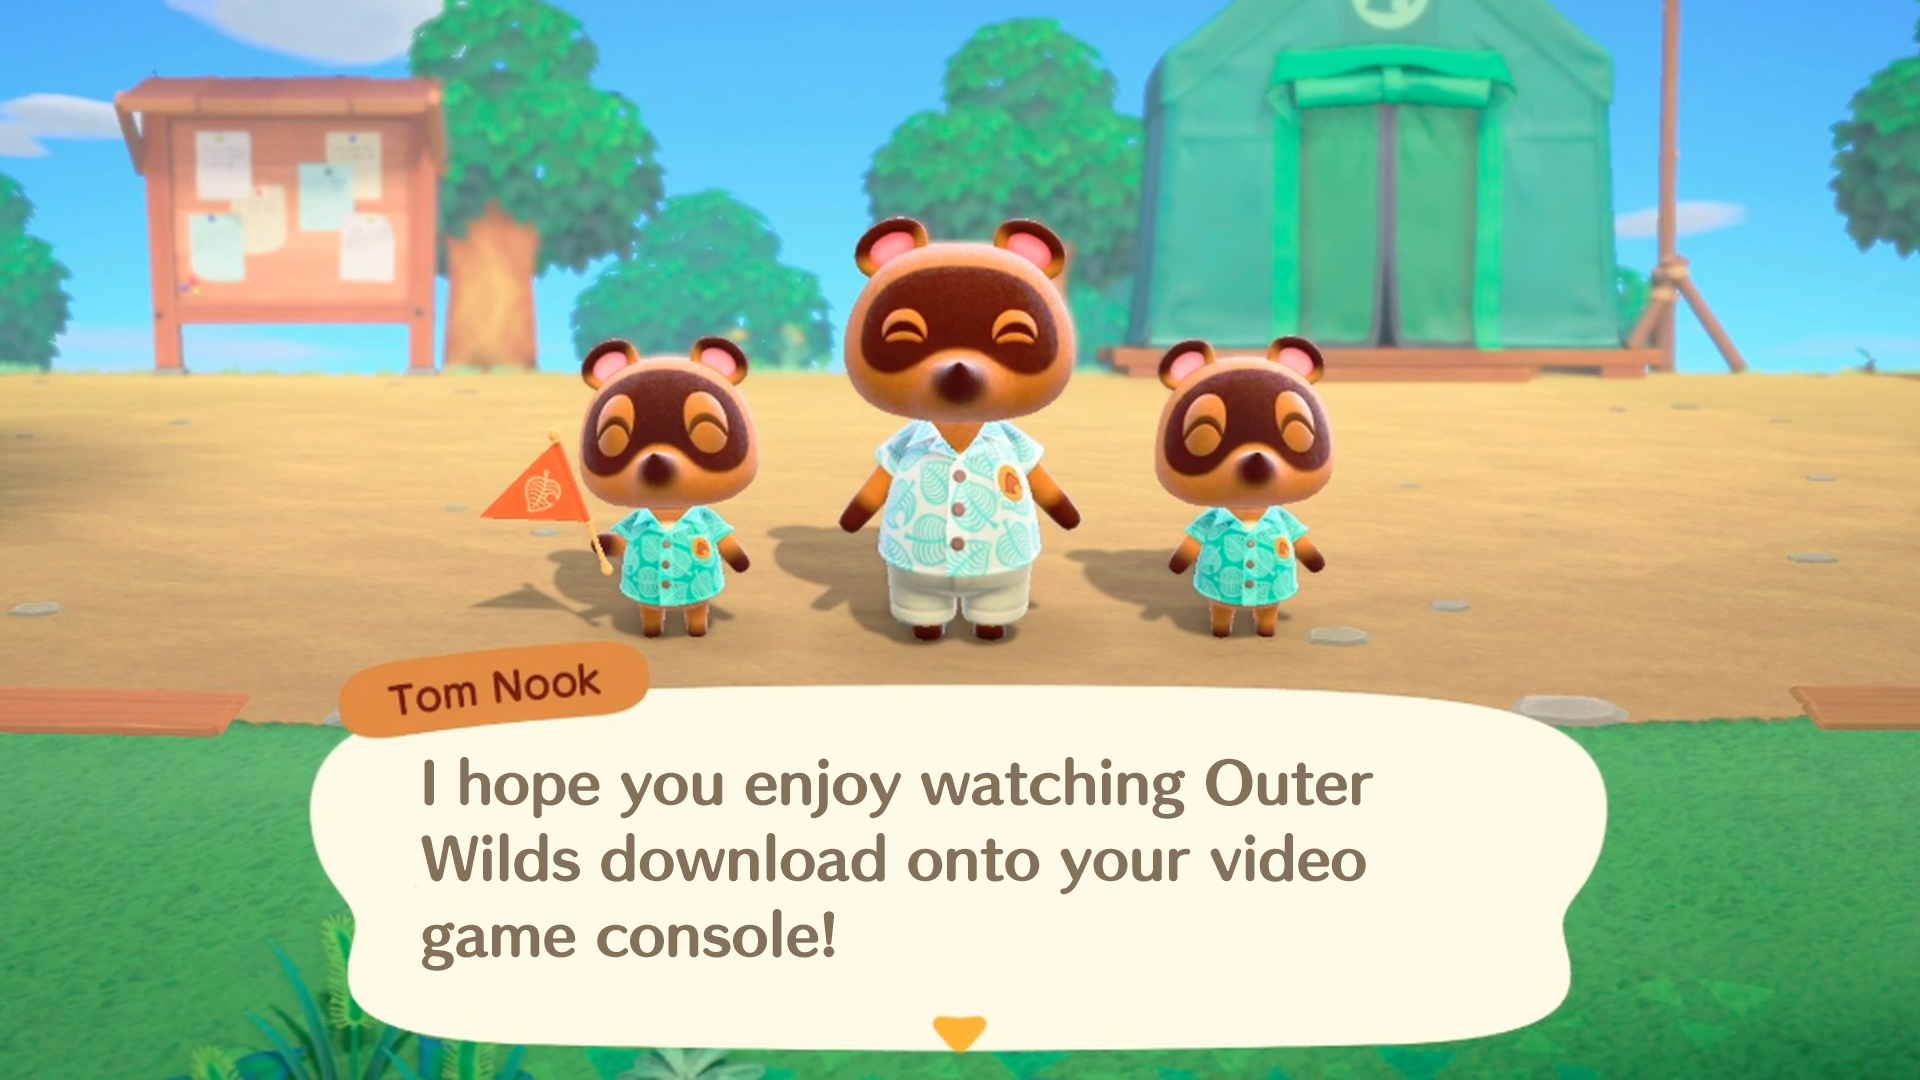 I hope you enjoy watching Outer Wilds download onto your video game console!